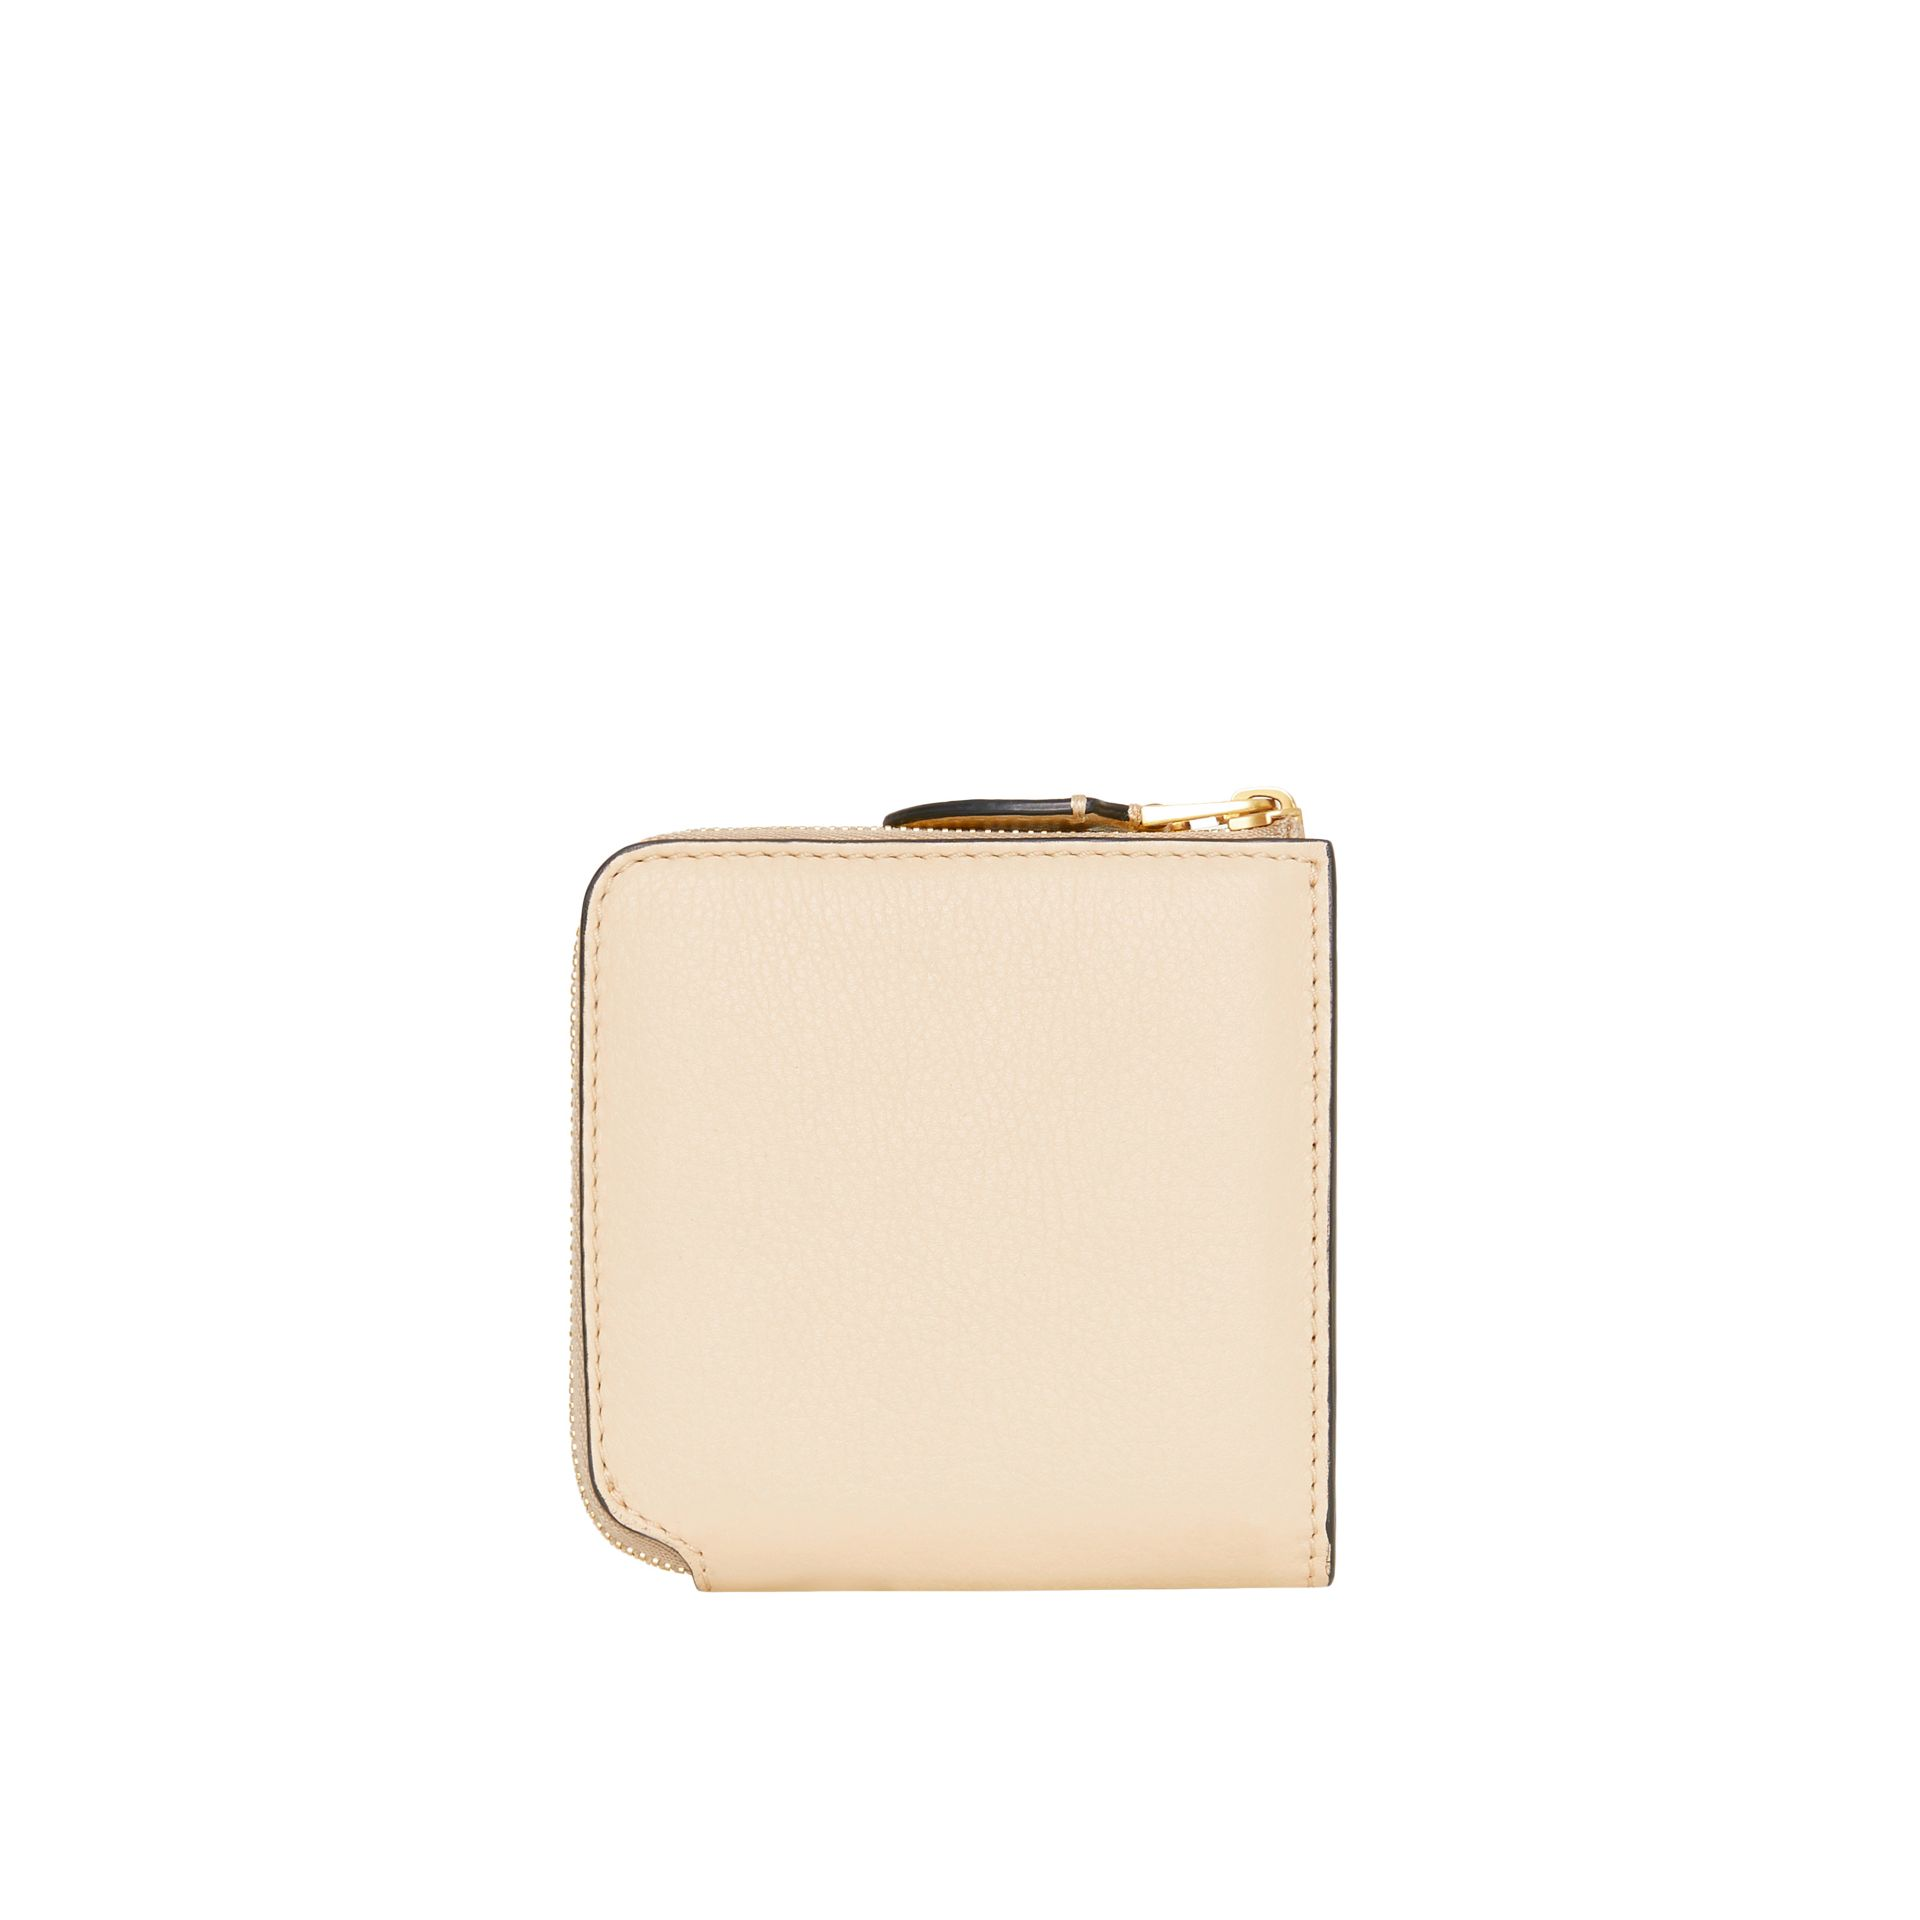 Grainy Leather Square Ziparound Wallet in Limestone - Women | Burberry Australia - gallery image 5